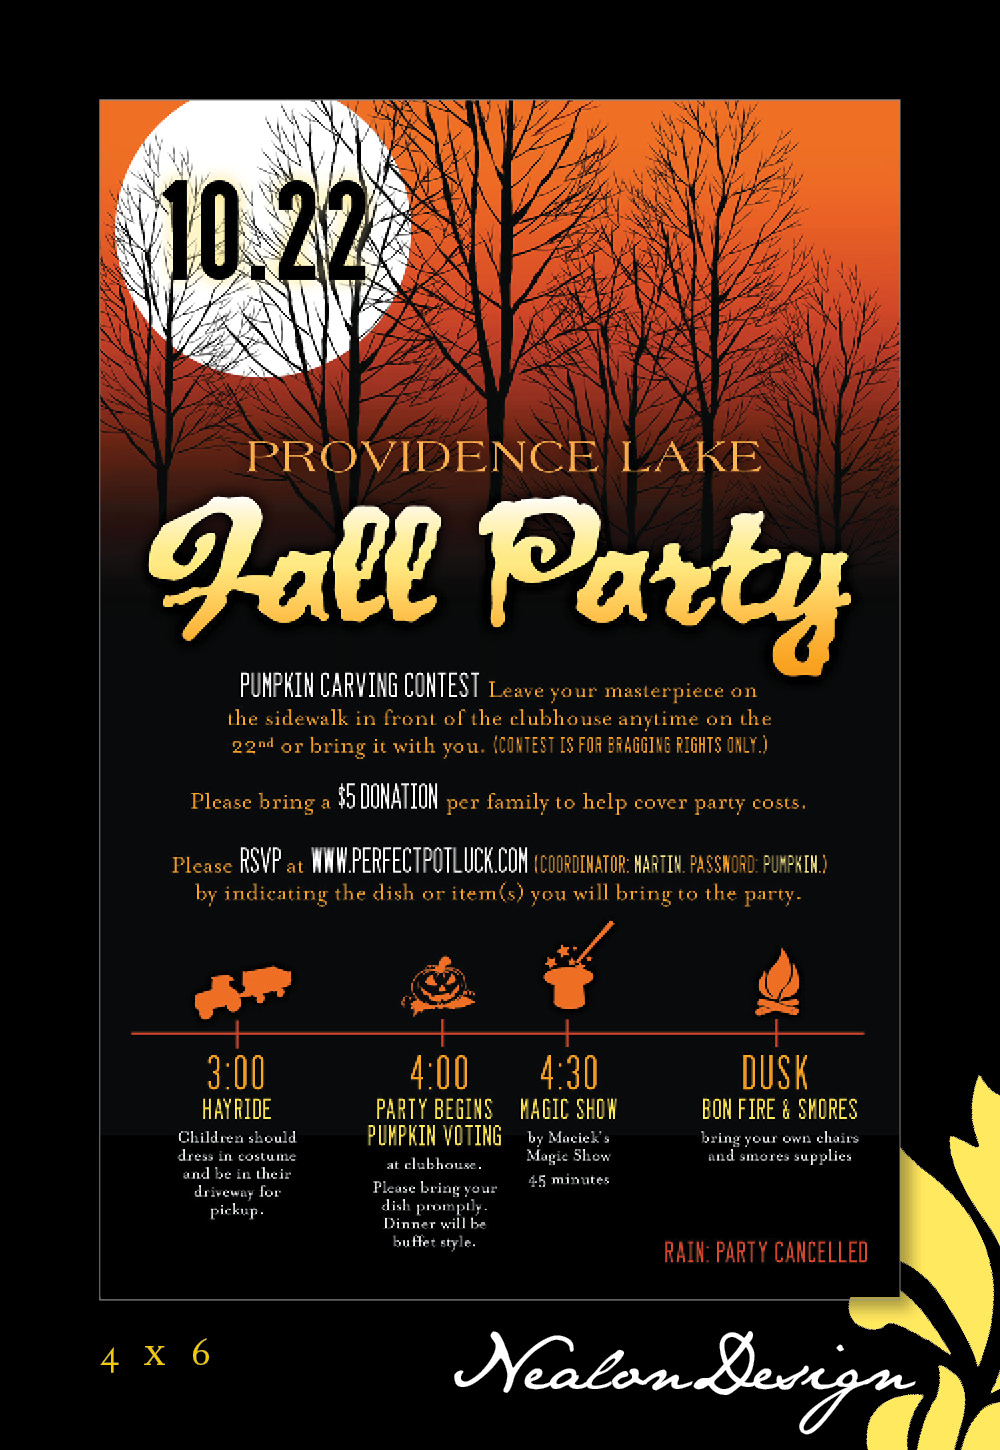 Nealon Design: Fall / Halloween (Block) Party Invitation